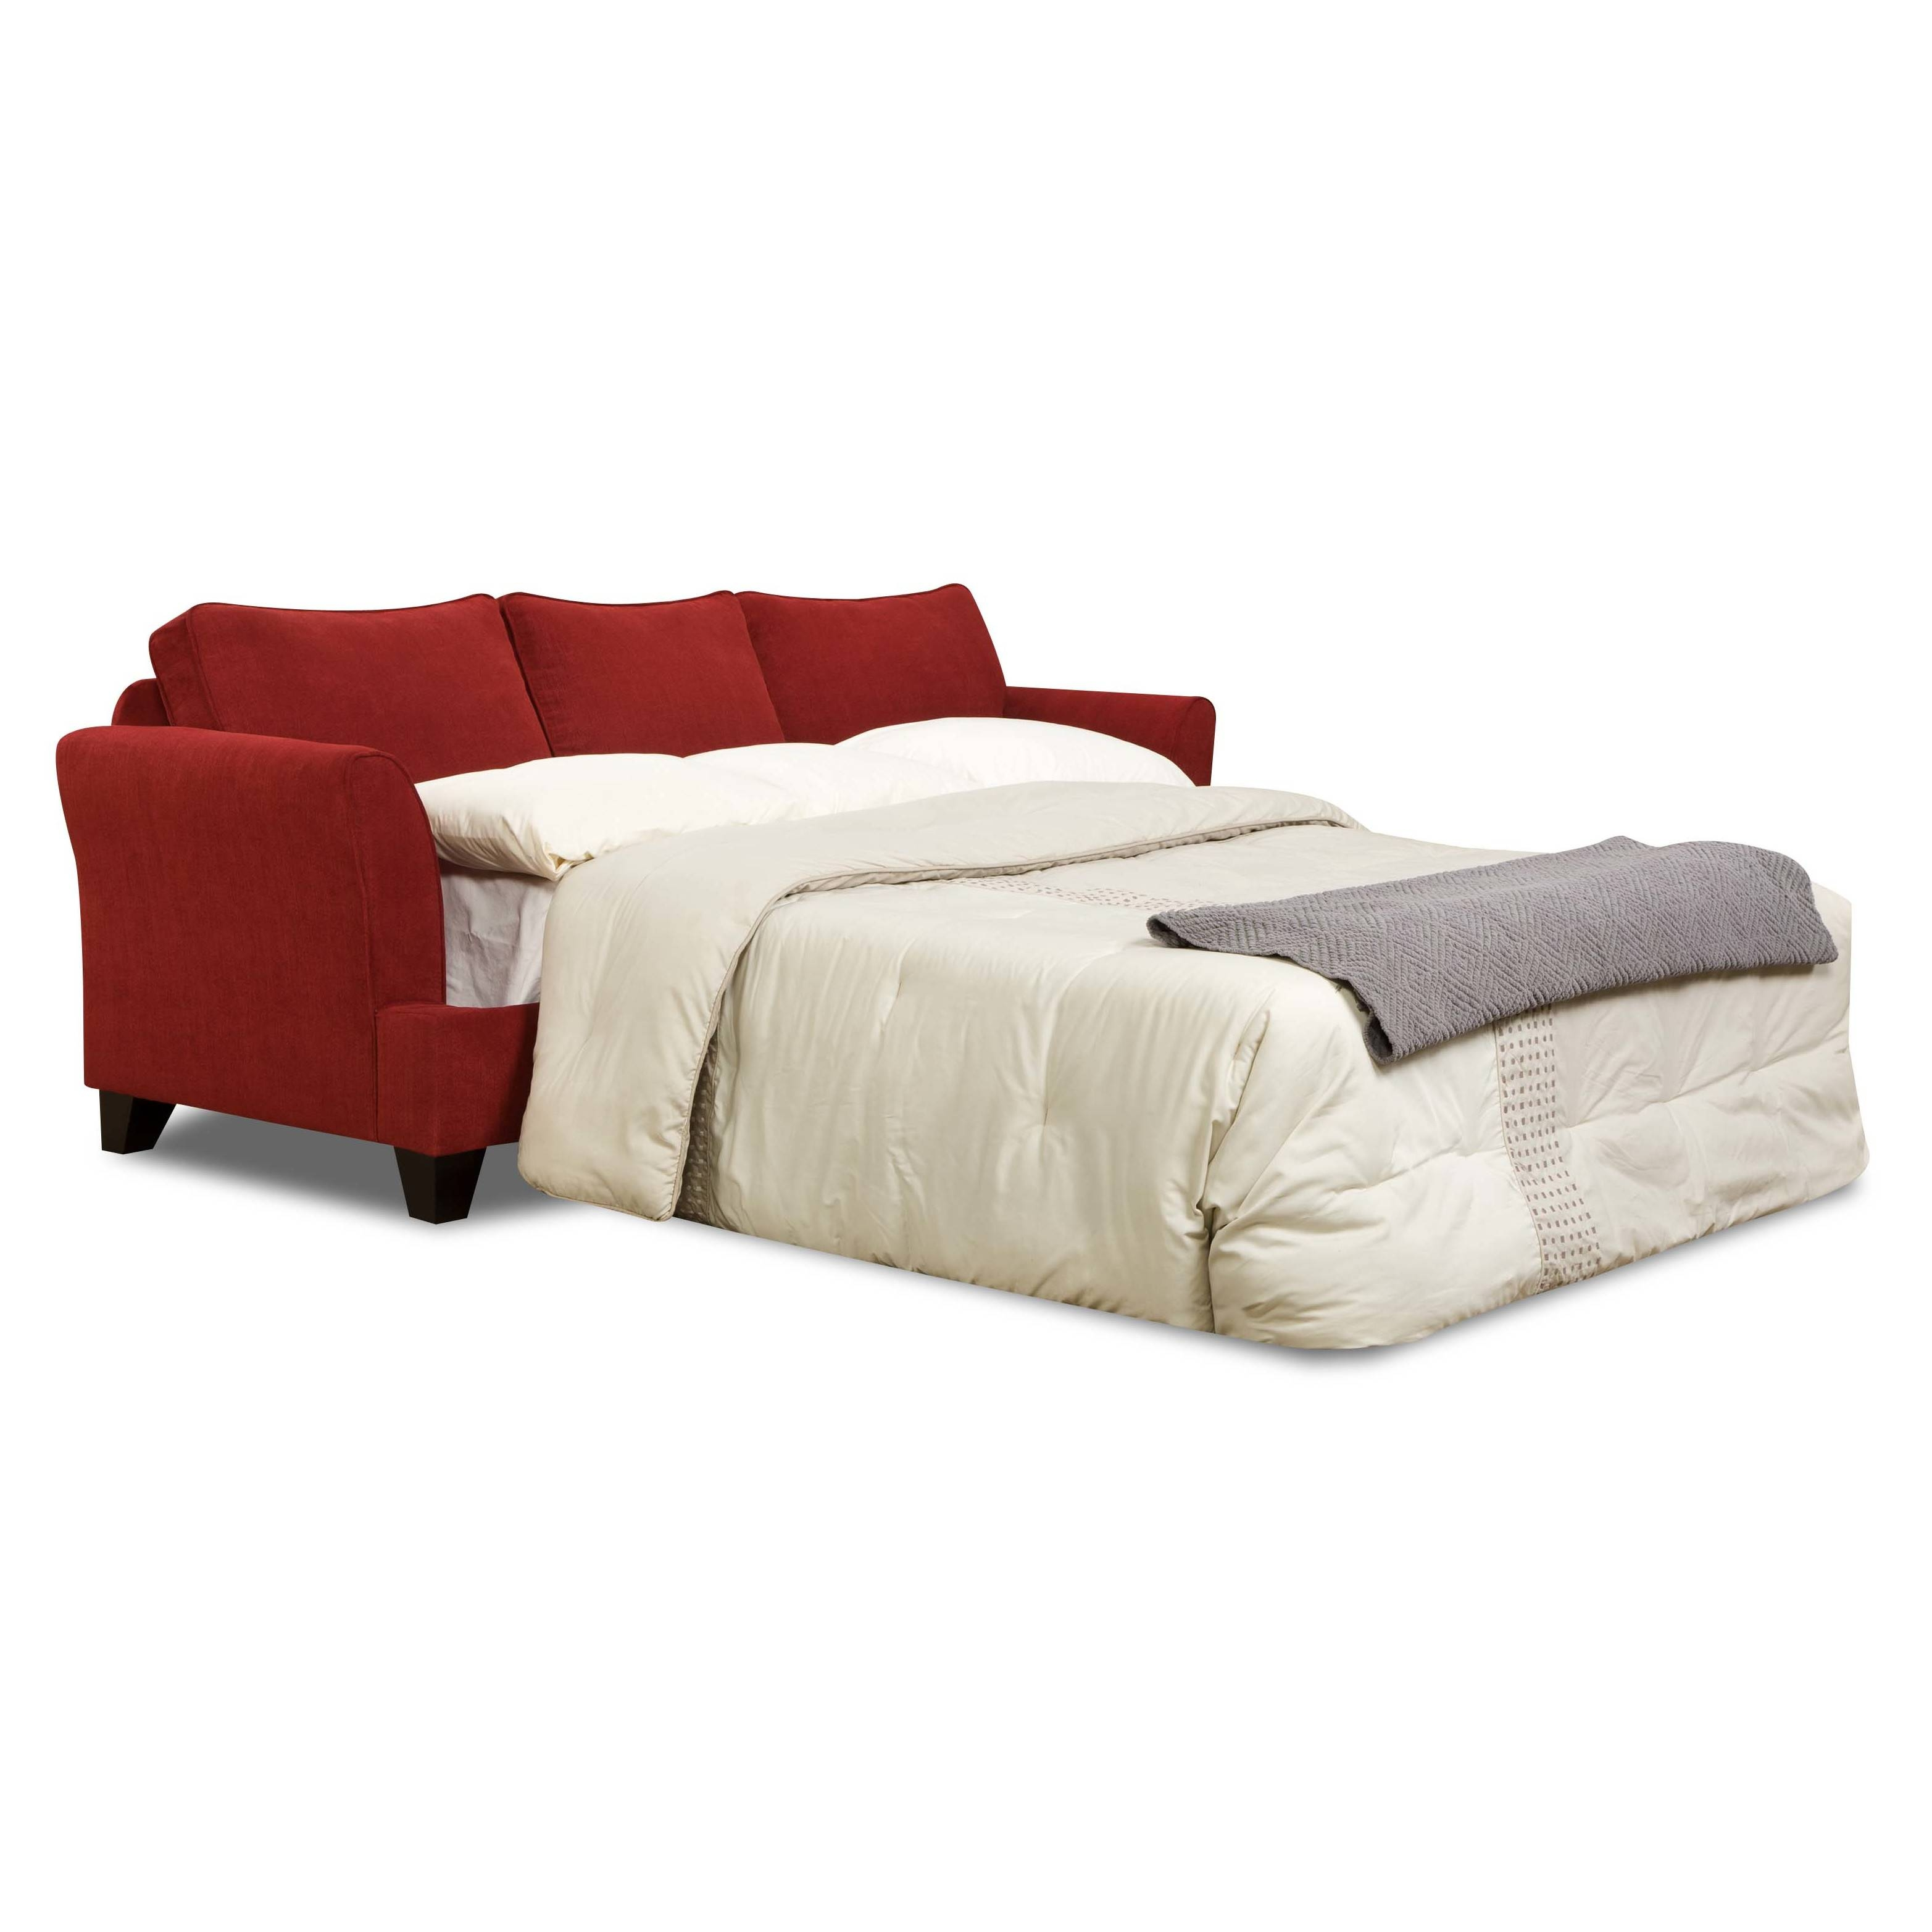 Sofas: Simmons Beautyrest Sofa Bed | Queen Sectional Sleeper Sofa Throughout Simmons Sleeper Sofas (View 14 of 15)